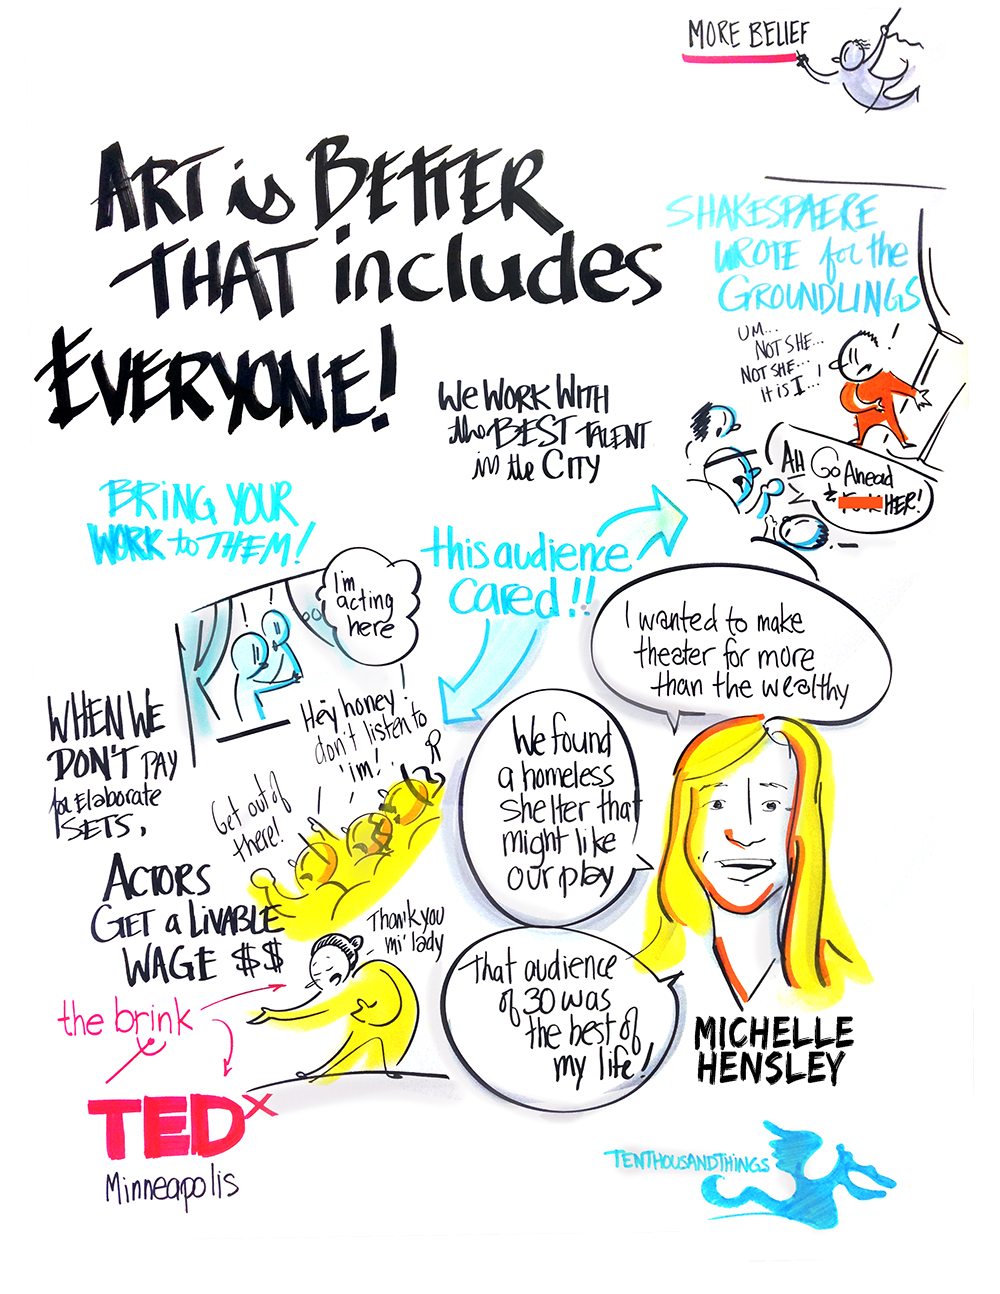 Copy of Graphic Recording from Minneapolis TED X Conference | MORE BELIEF